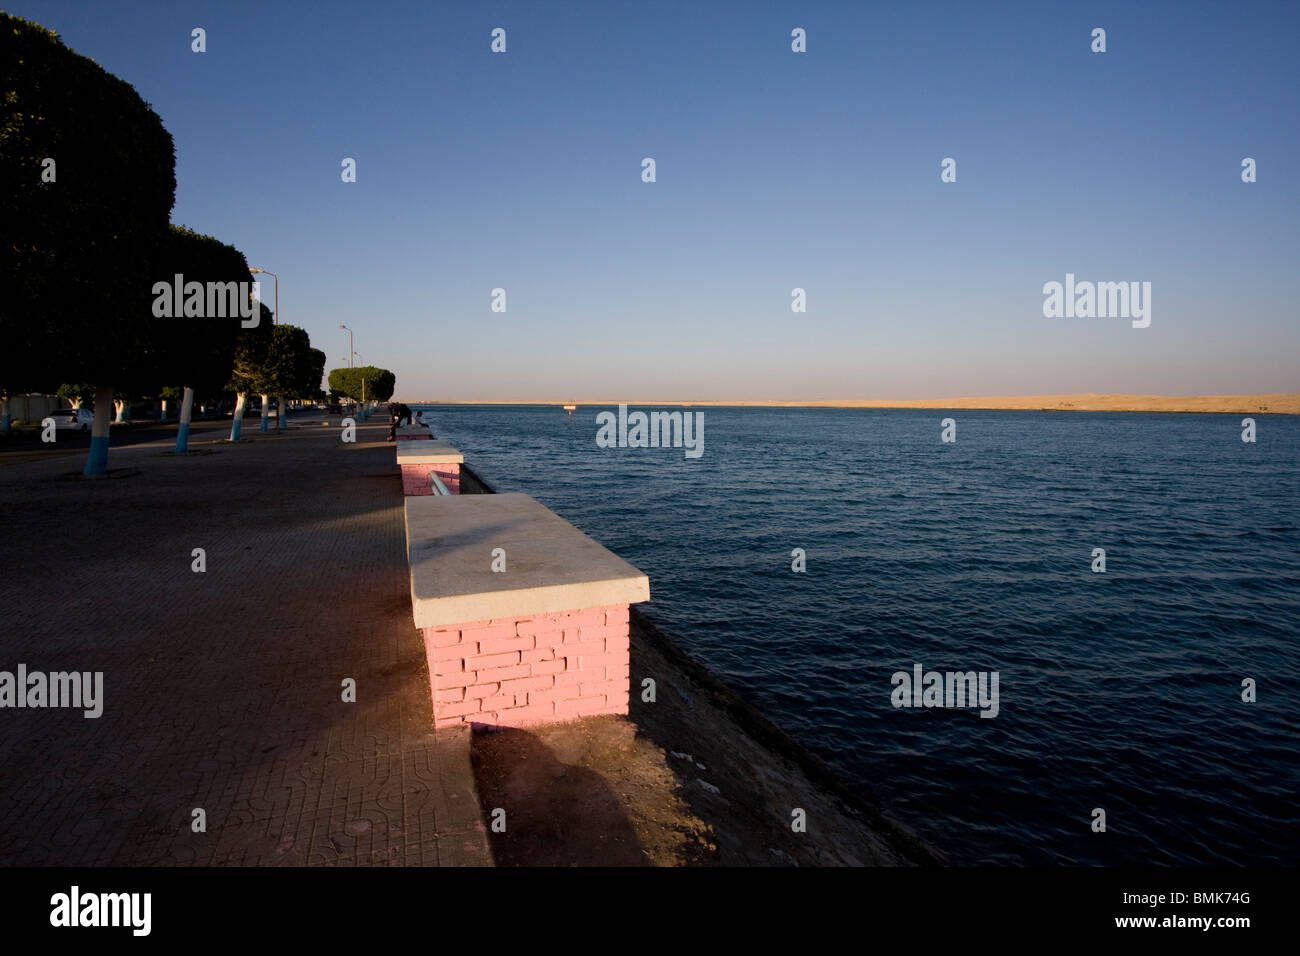 Corniche by the Suez Canal, Suez, South Sinai, Egypt - Stock Image